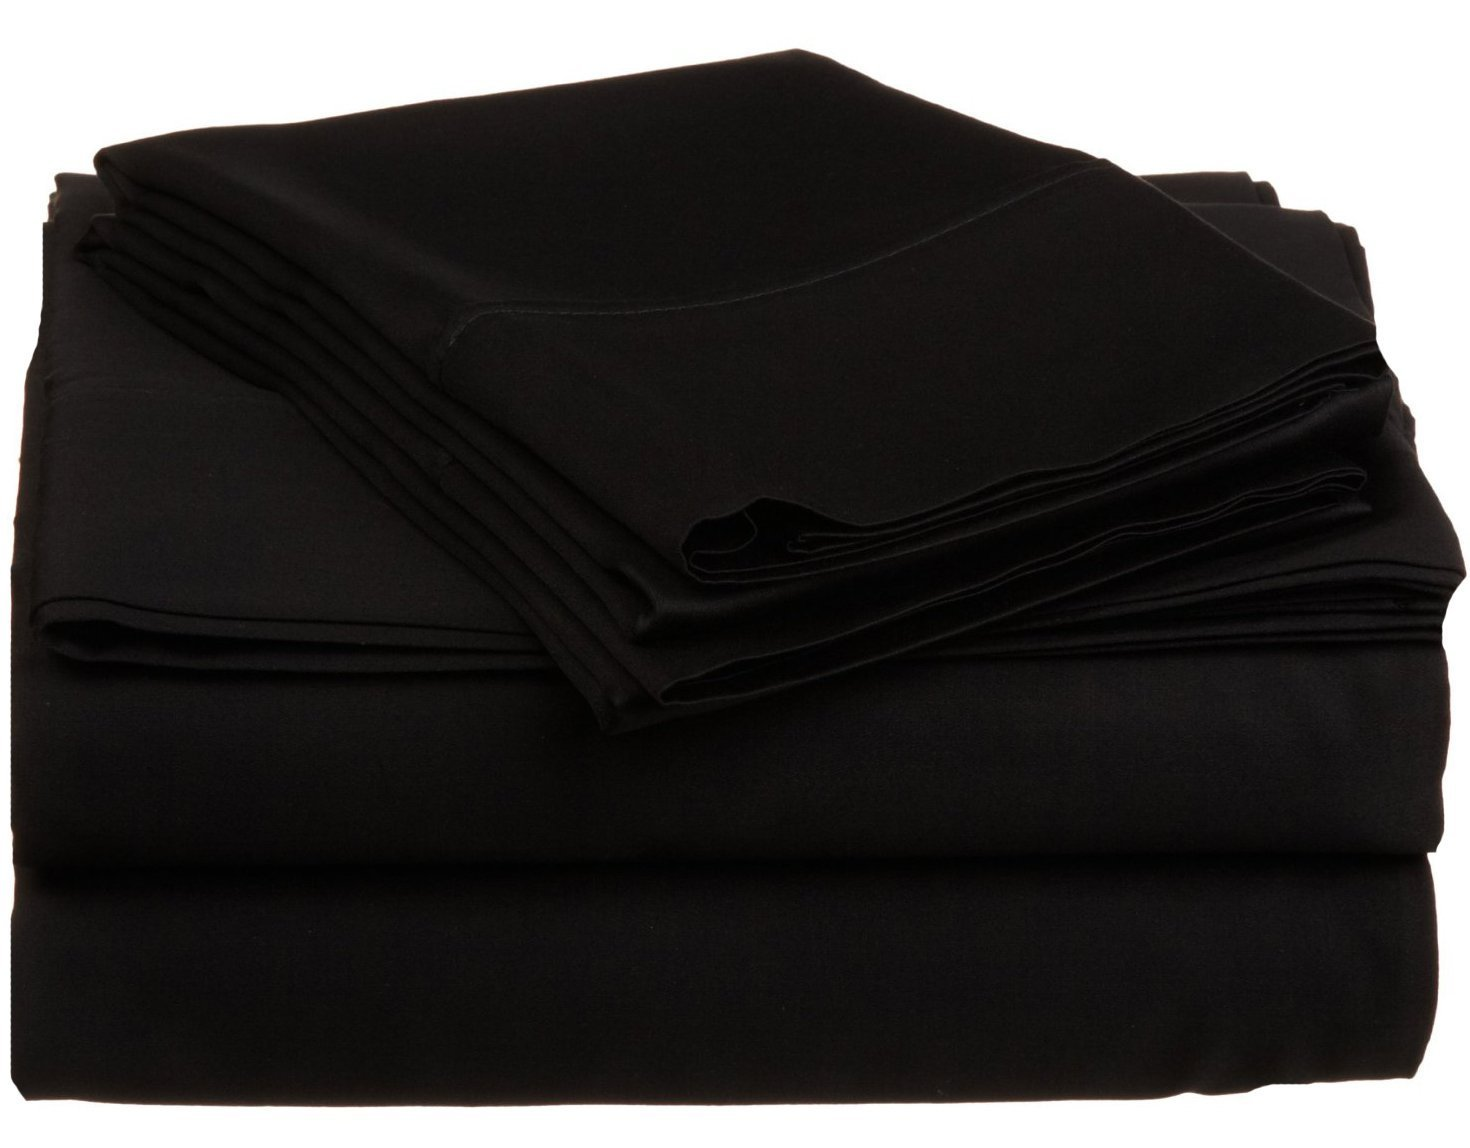 Bed Life Solid Black - Top / Flat Sheet With Matching Pillow Cases ( Set of 3 Pack ) 500 TC Ultra Soft Sizes ( Cal-King ) Made By Galaxy's Linen